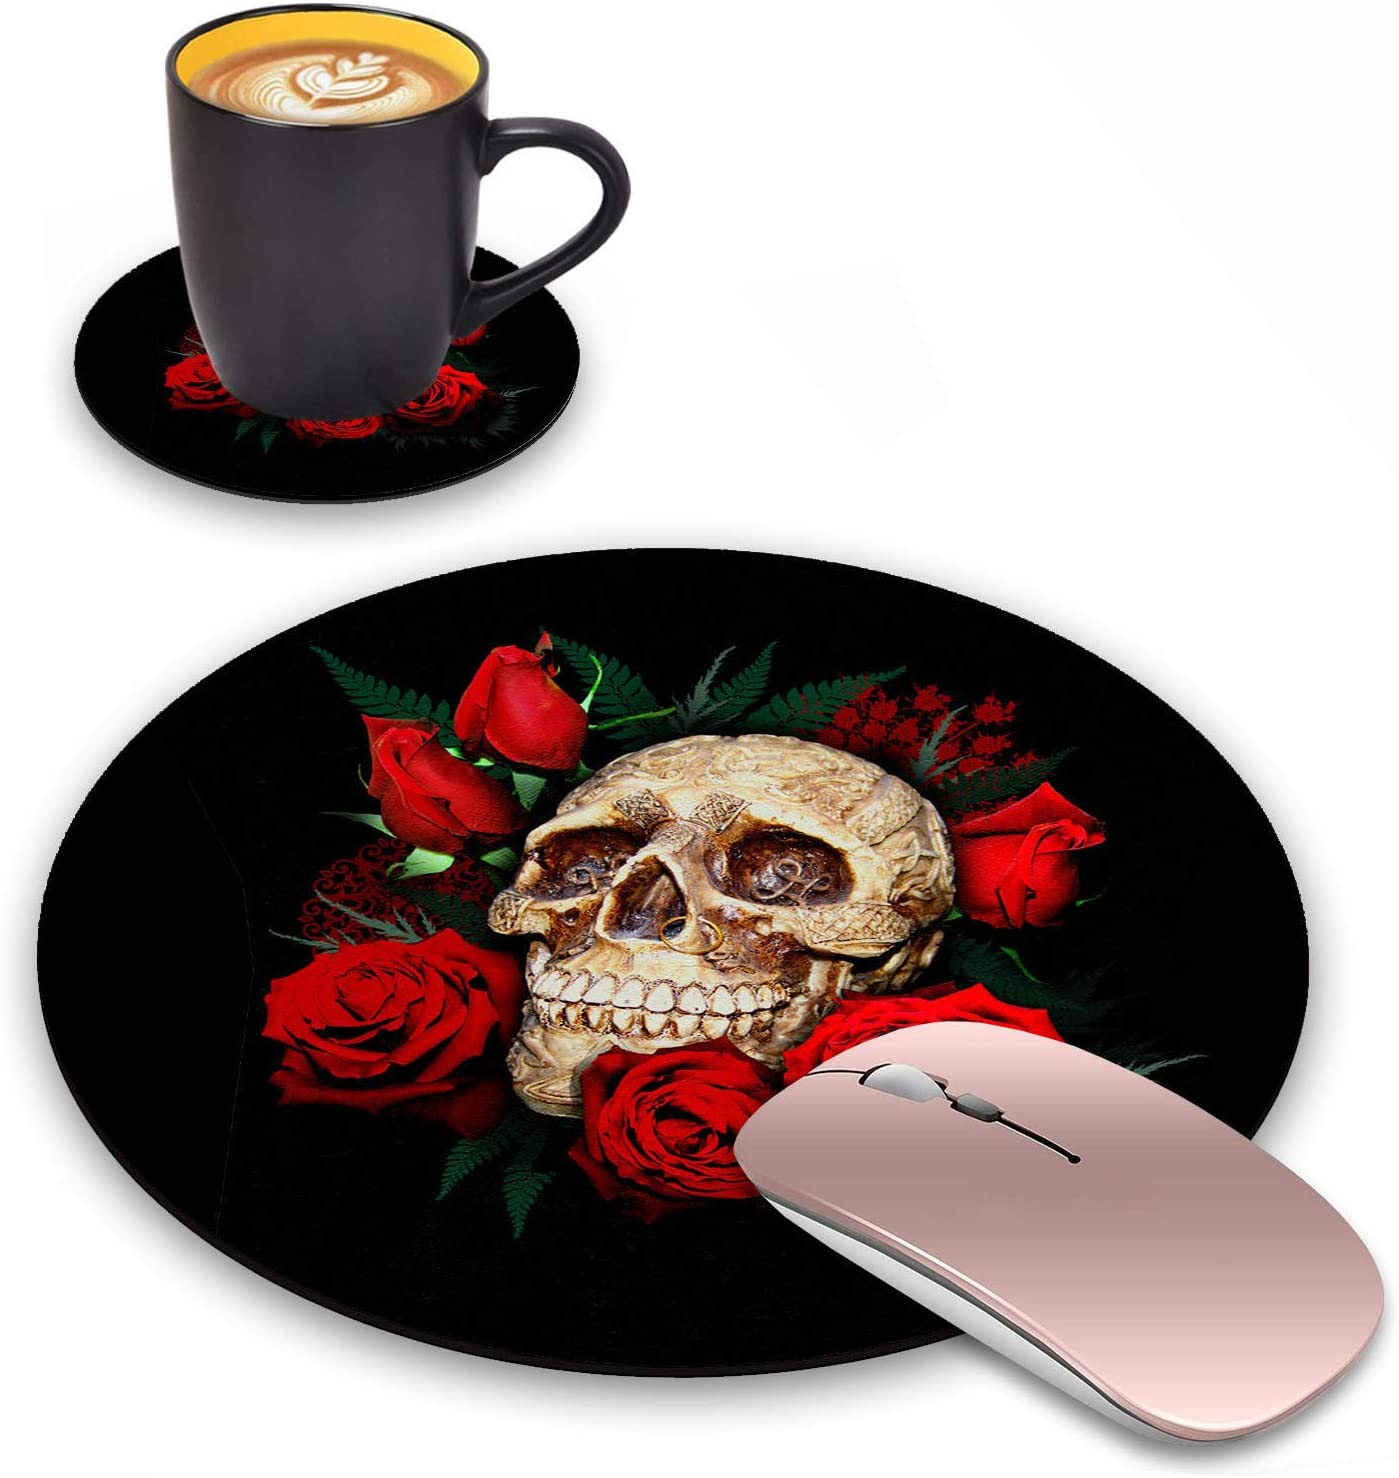 Log Zog Round Mouse Pad with Coasters Set, Skull Red Rose Design Mouse Pad Non-Slip Rubber Mousepad Office Accessories Desk Decor Mouse Pads for Computers Laptop